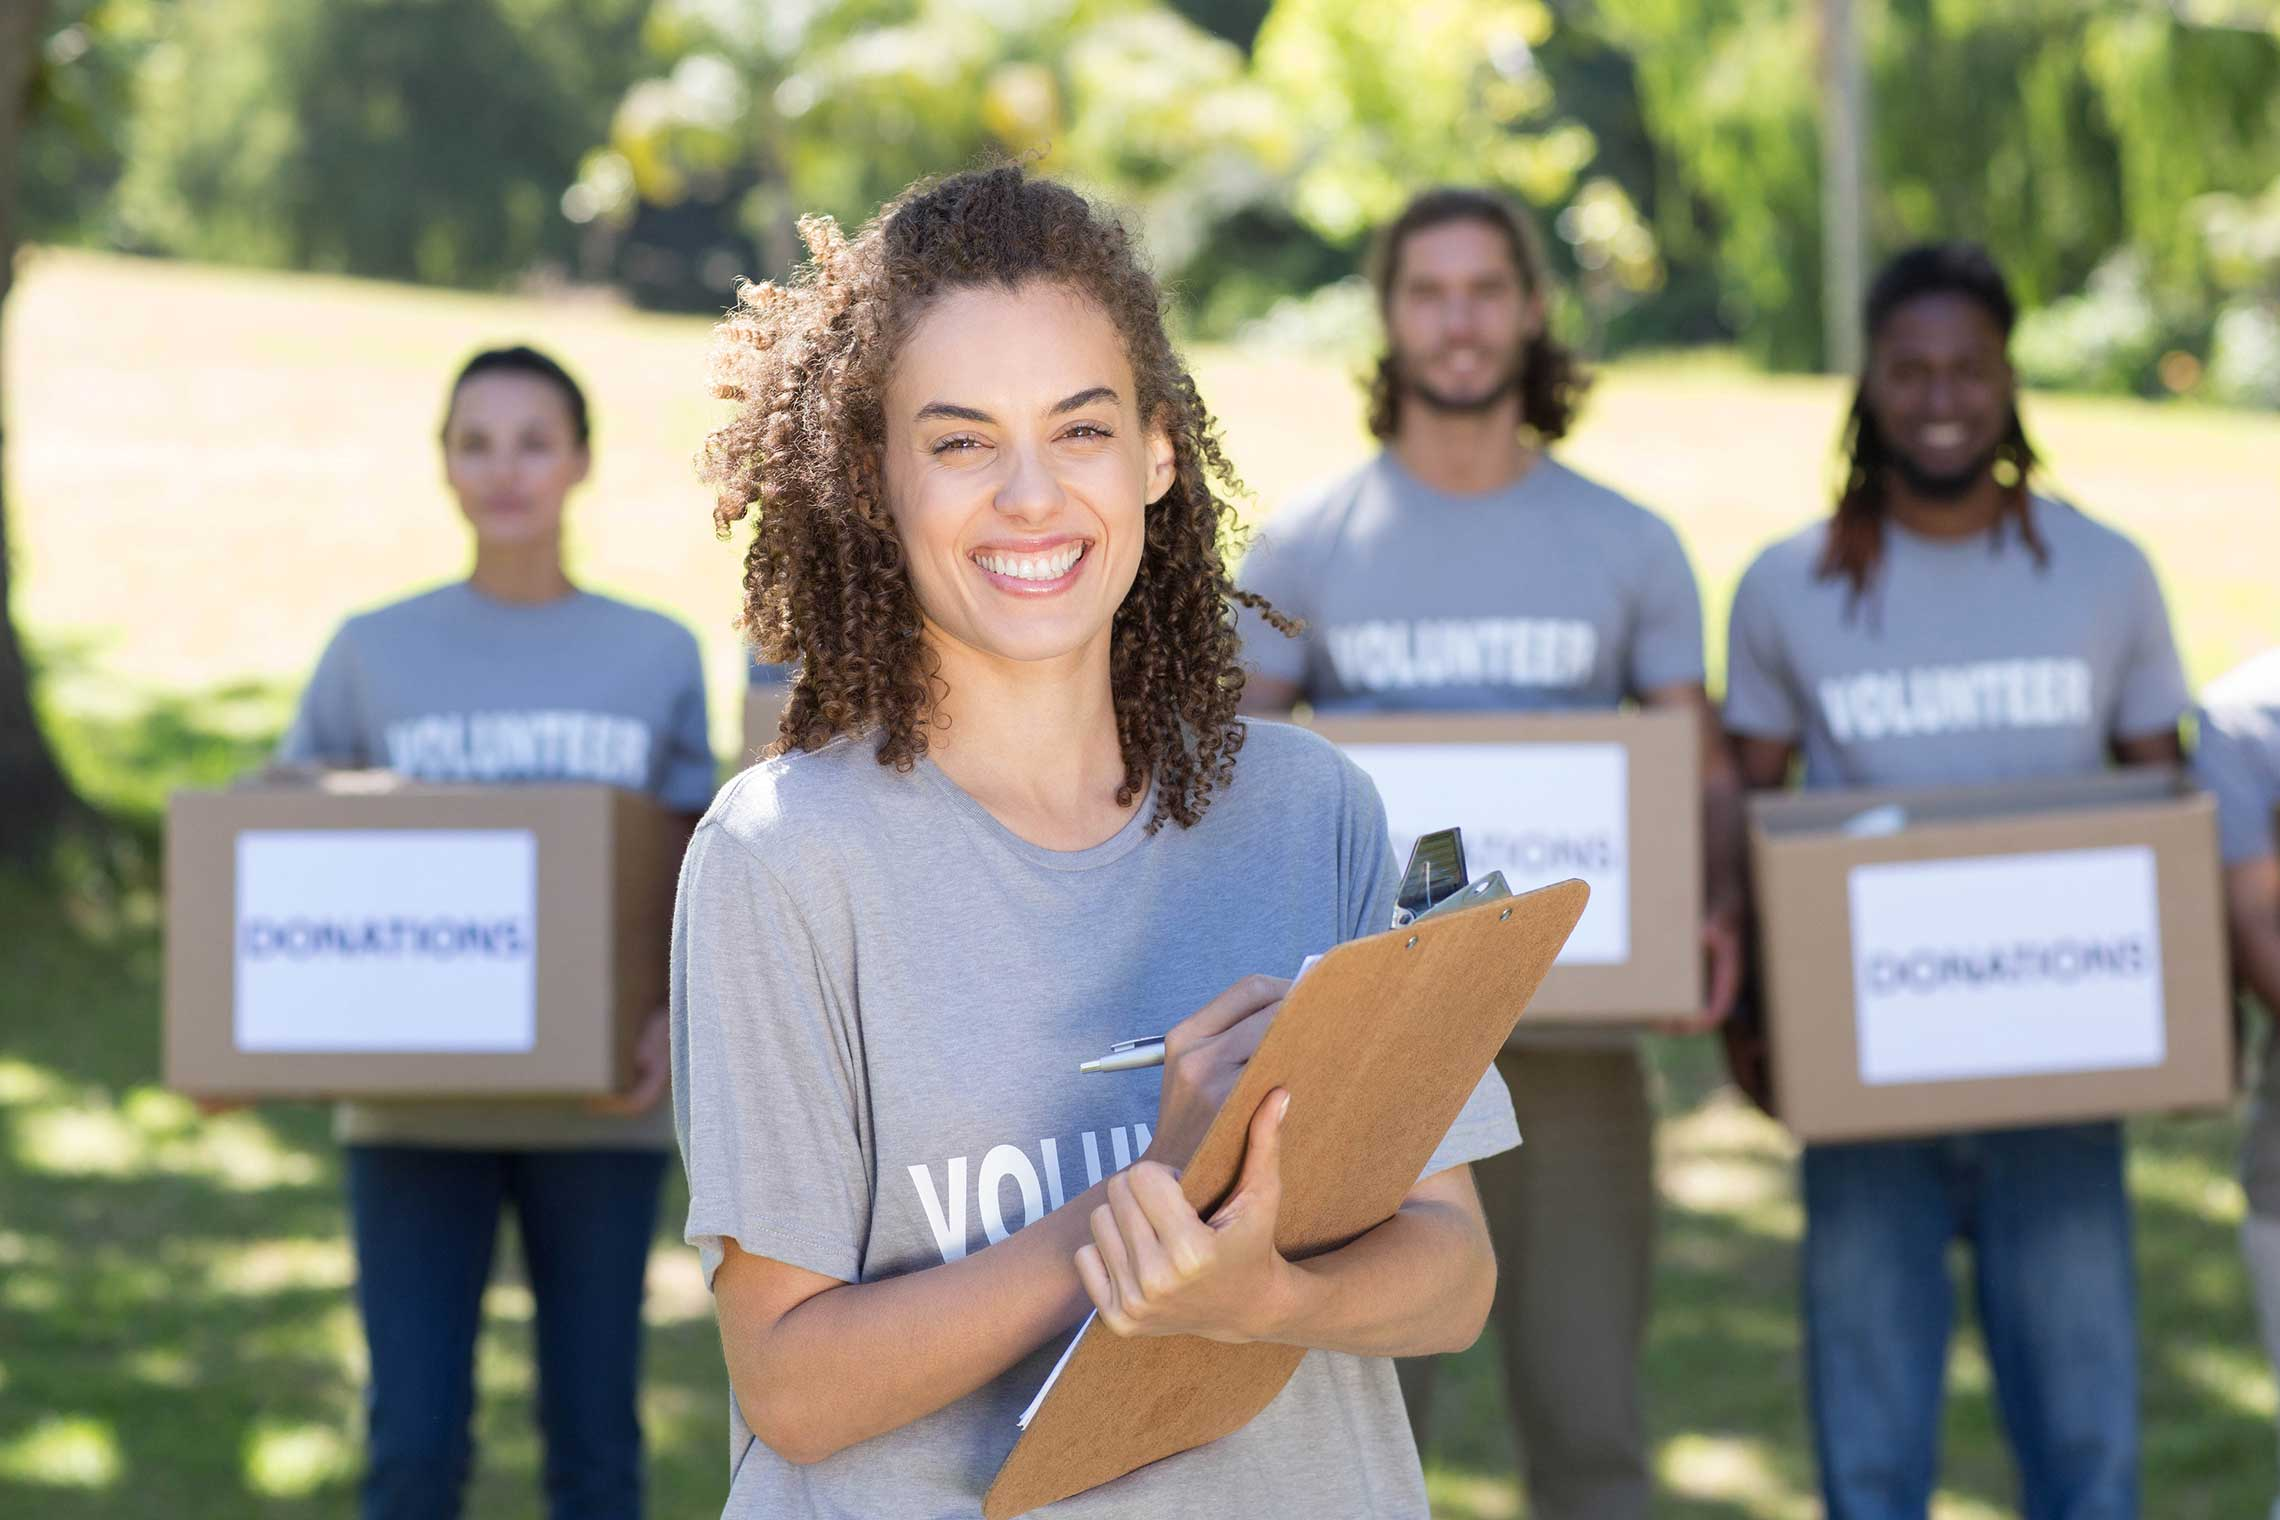 Volunteer Programs That Helps You Pay for College